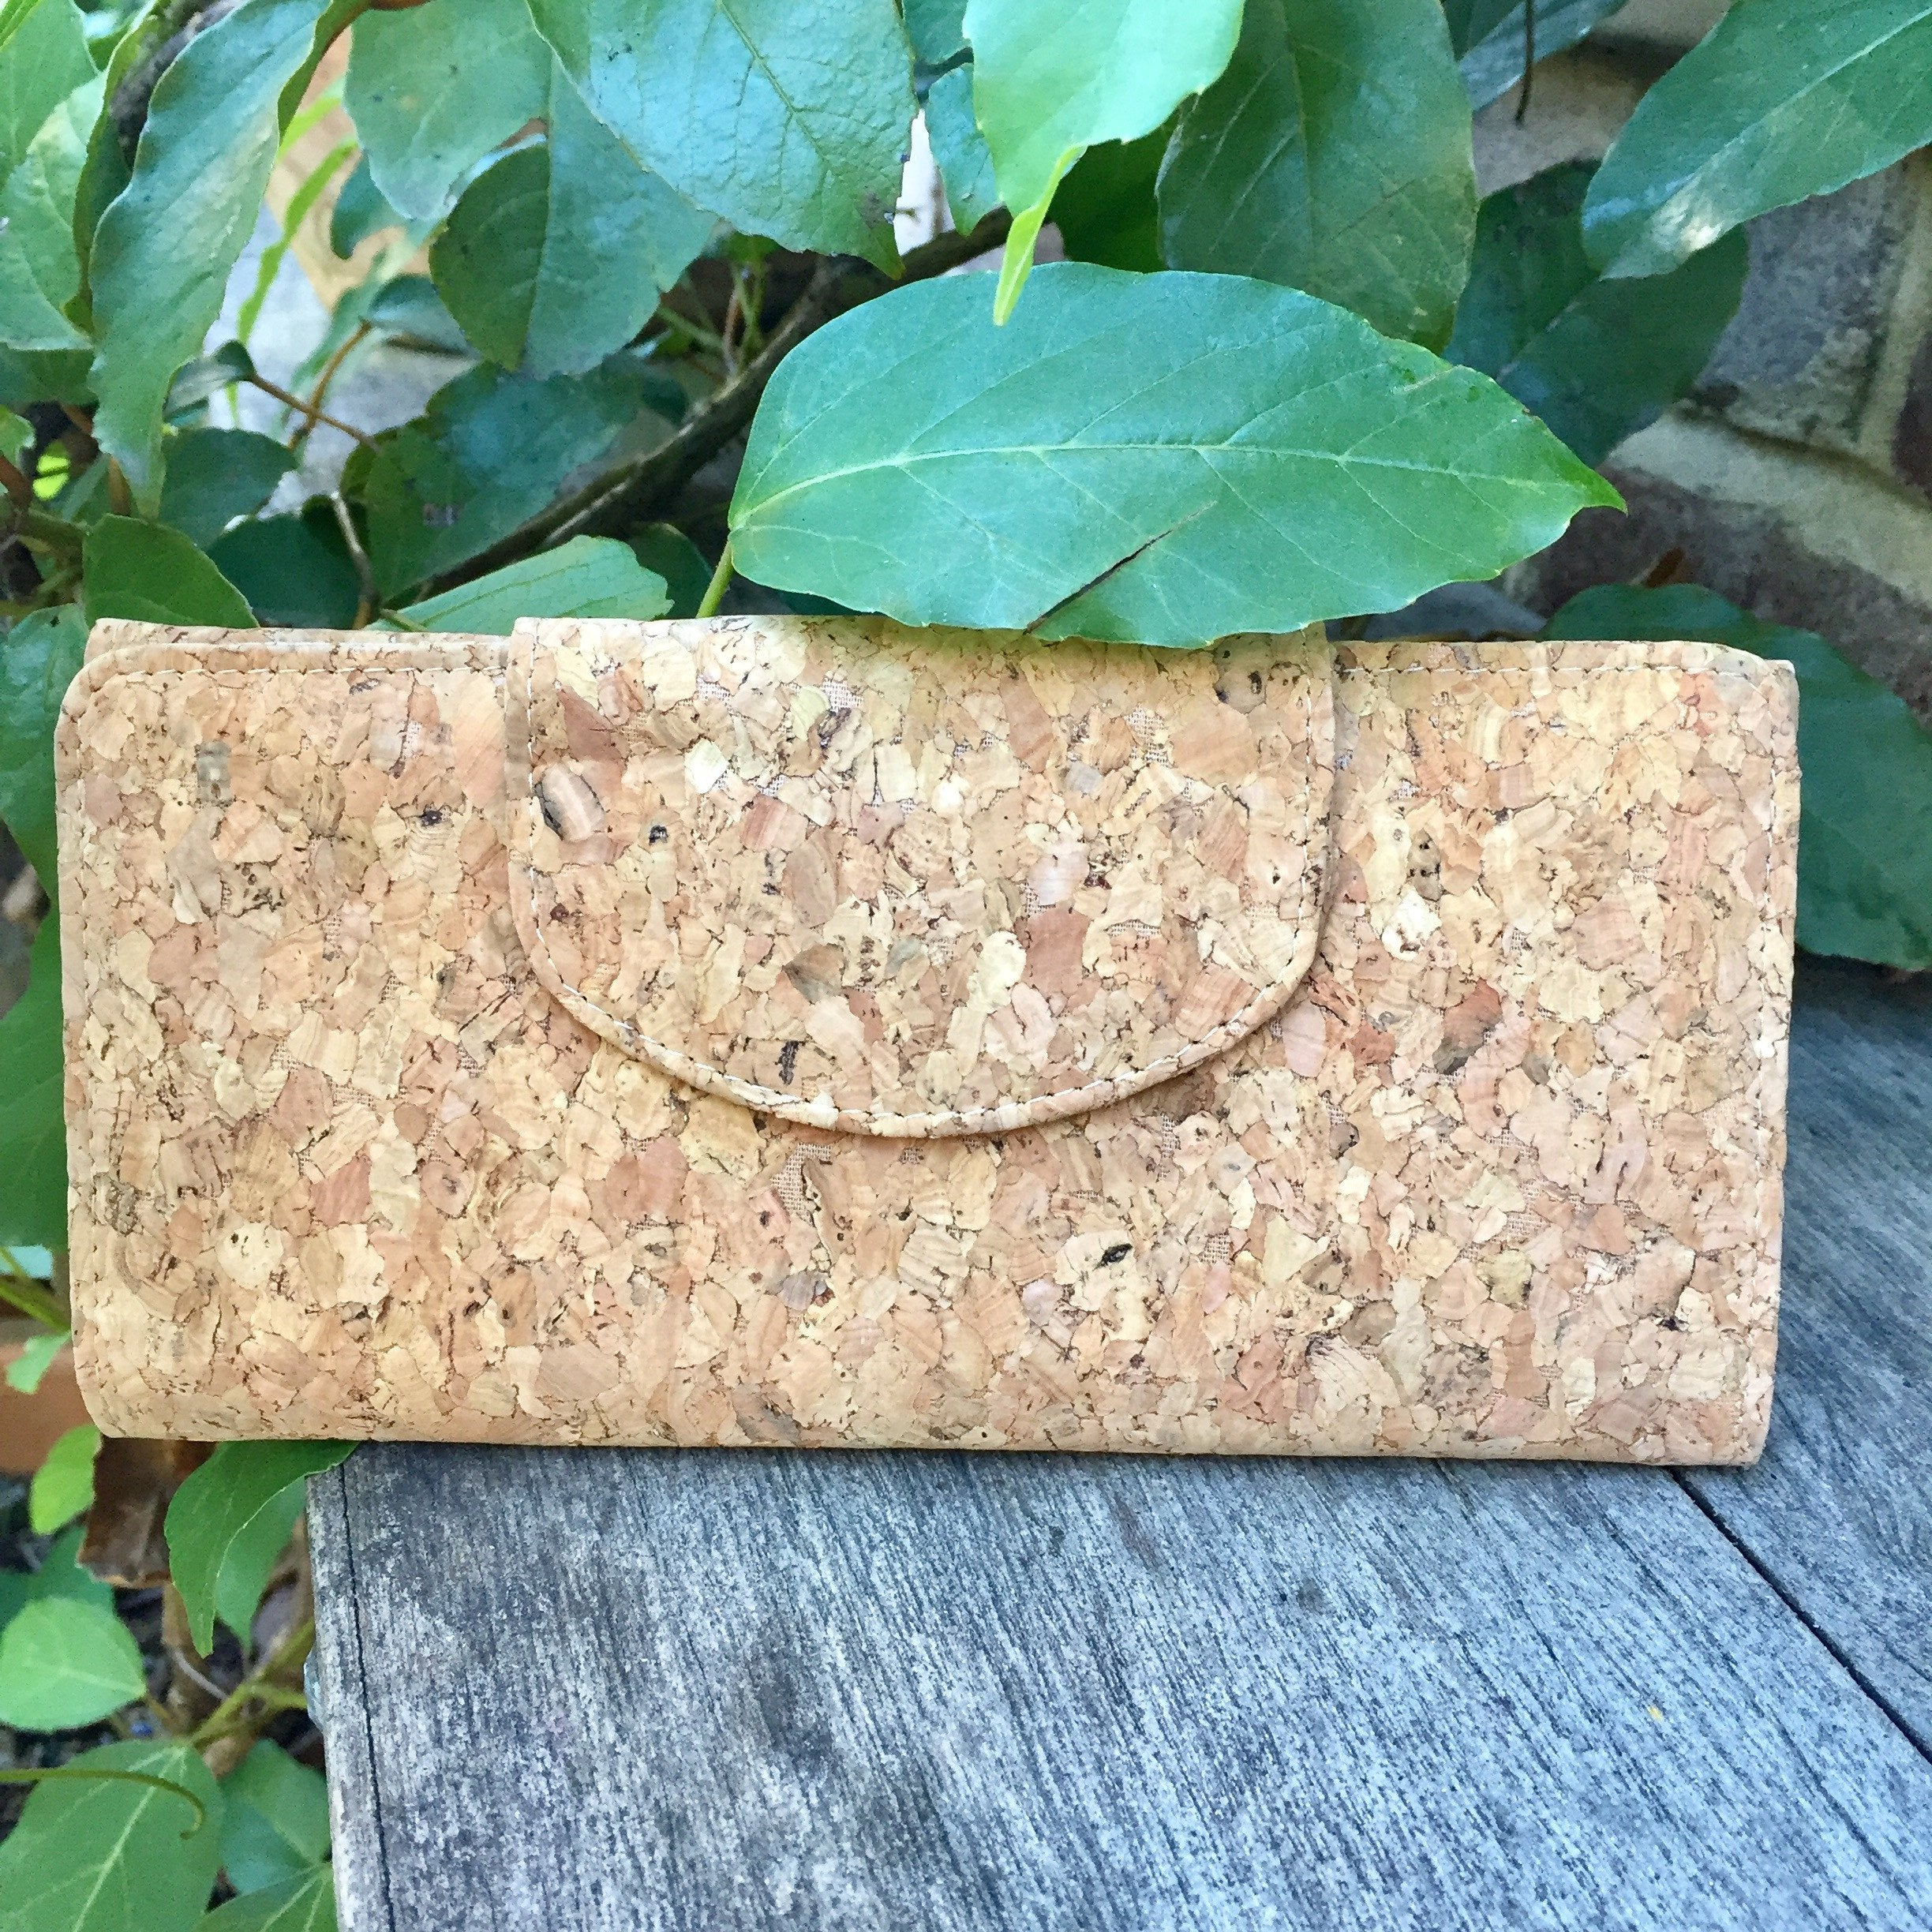 Classic Plain Natural Cork Vegan Ecofriendly Sustainable Wallet PursePlain Classic Fara Cork Wallet Purse Natural Cruelty Free Ethical Vegan Recycled